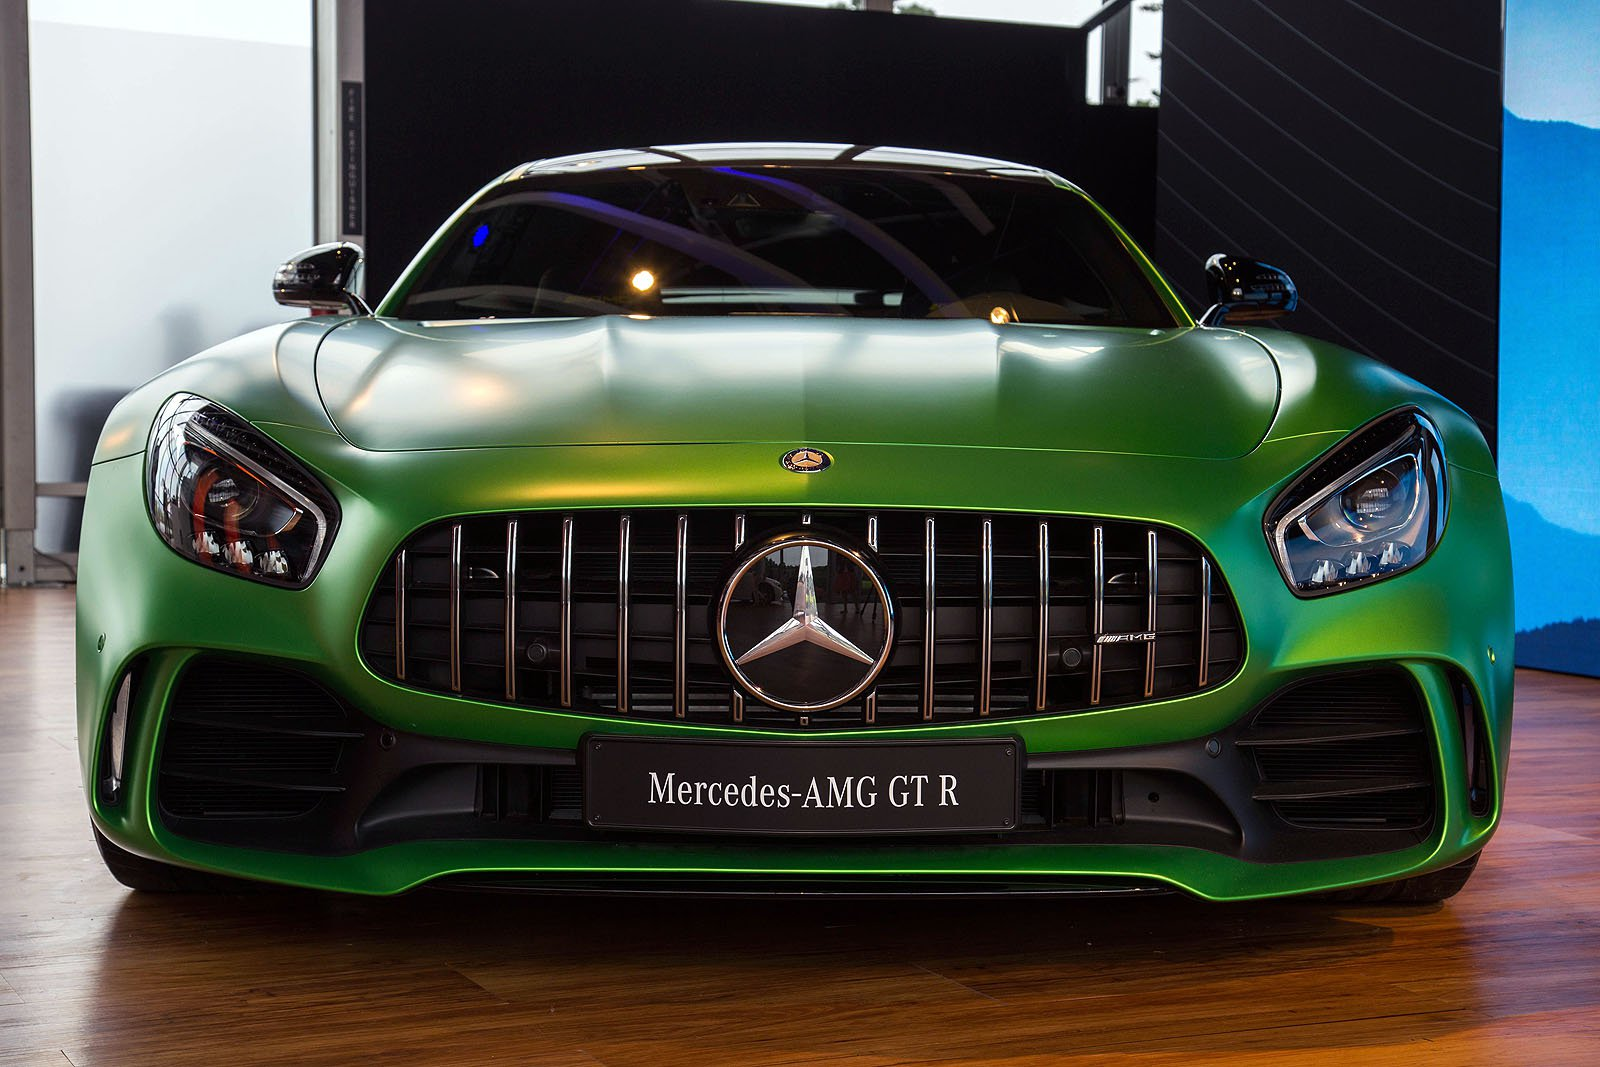 Jaw-Dropping Mercedes-AMG GT R Stands Out Among Supercars at U.S. Debut